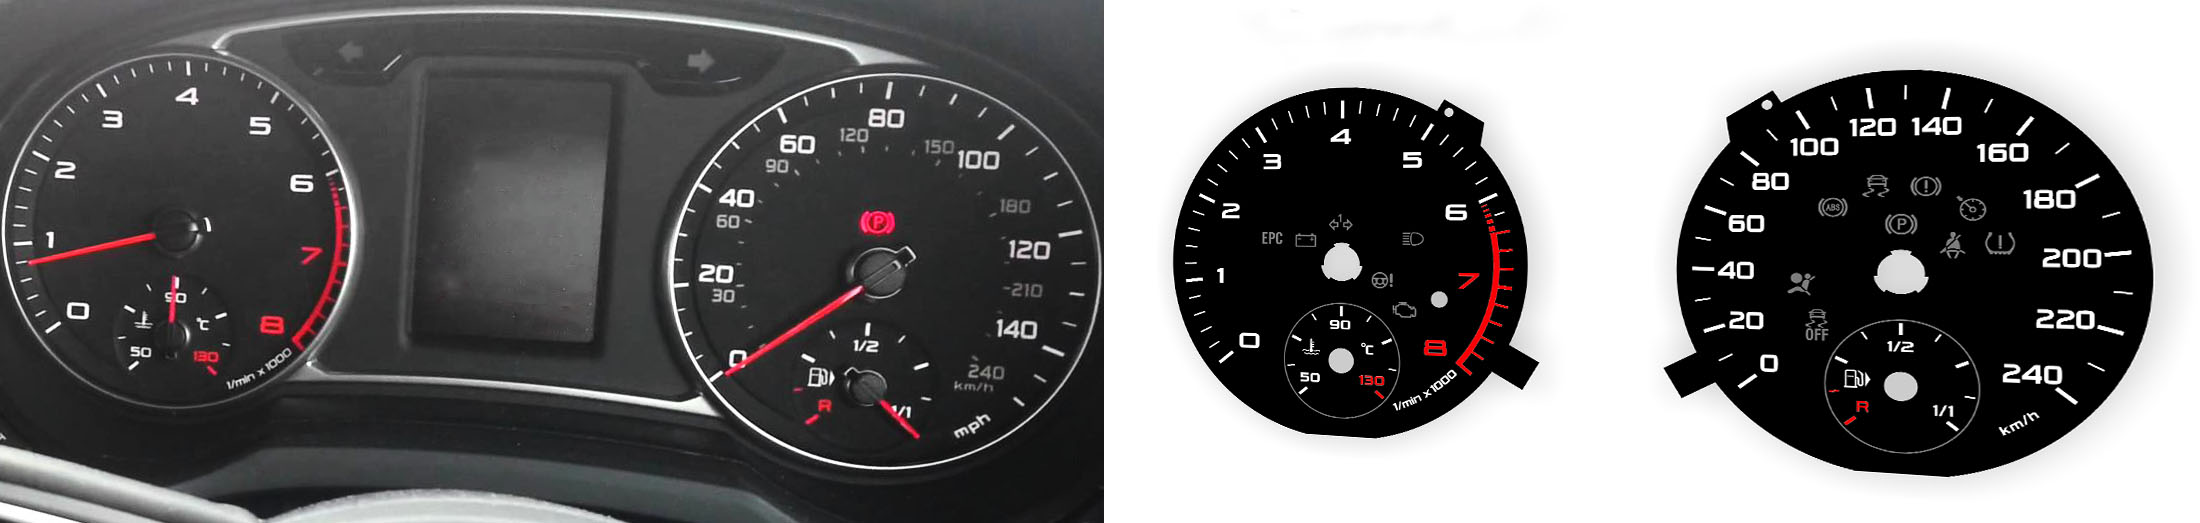 Audi A1 Replacement tacho dial - converted from MPH to Km/h